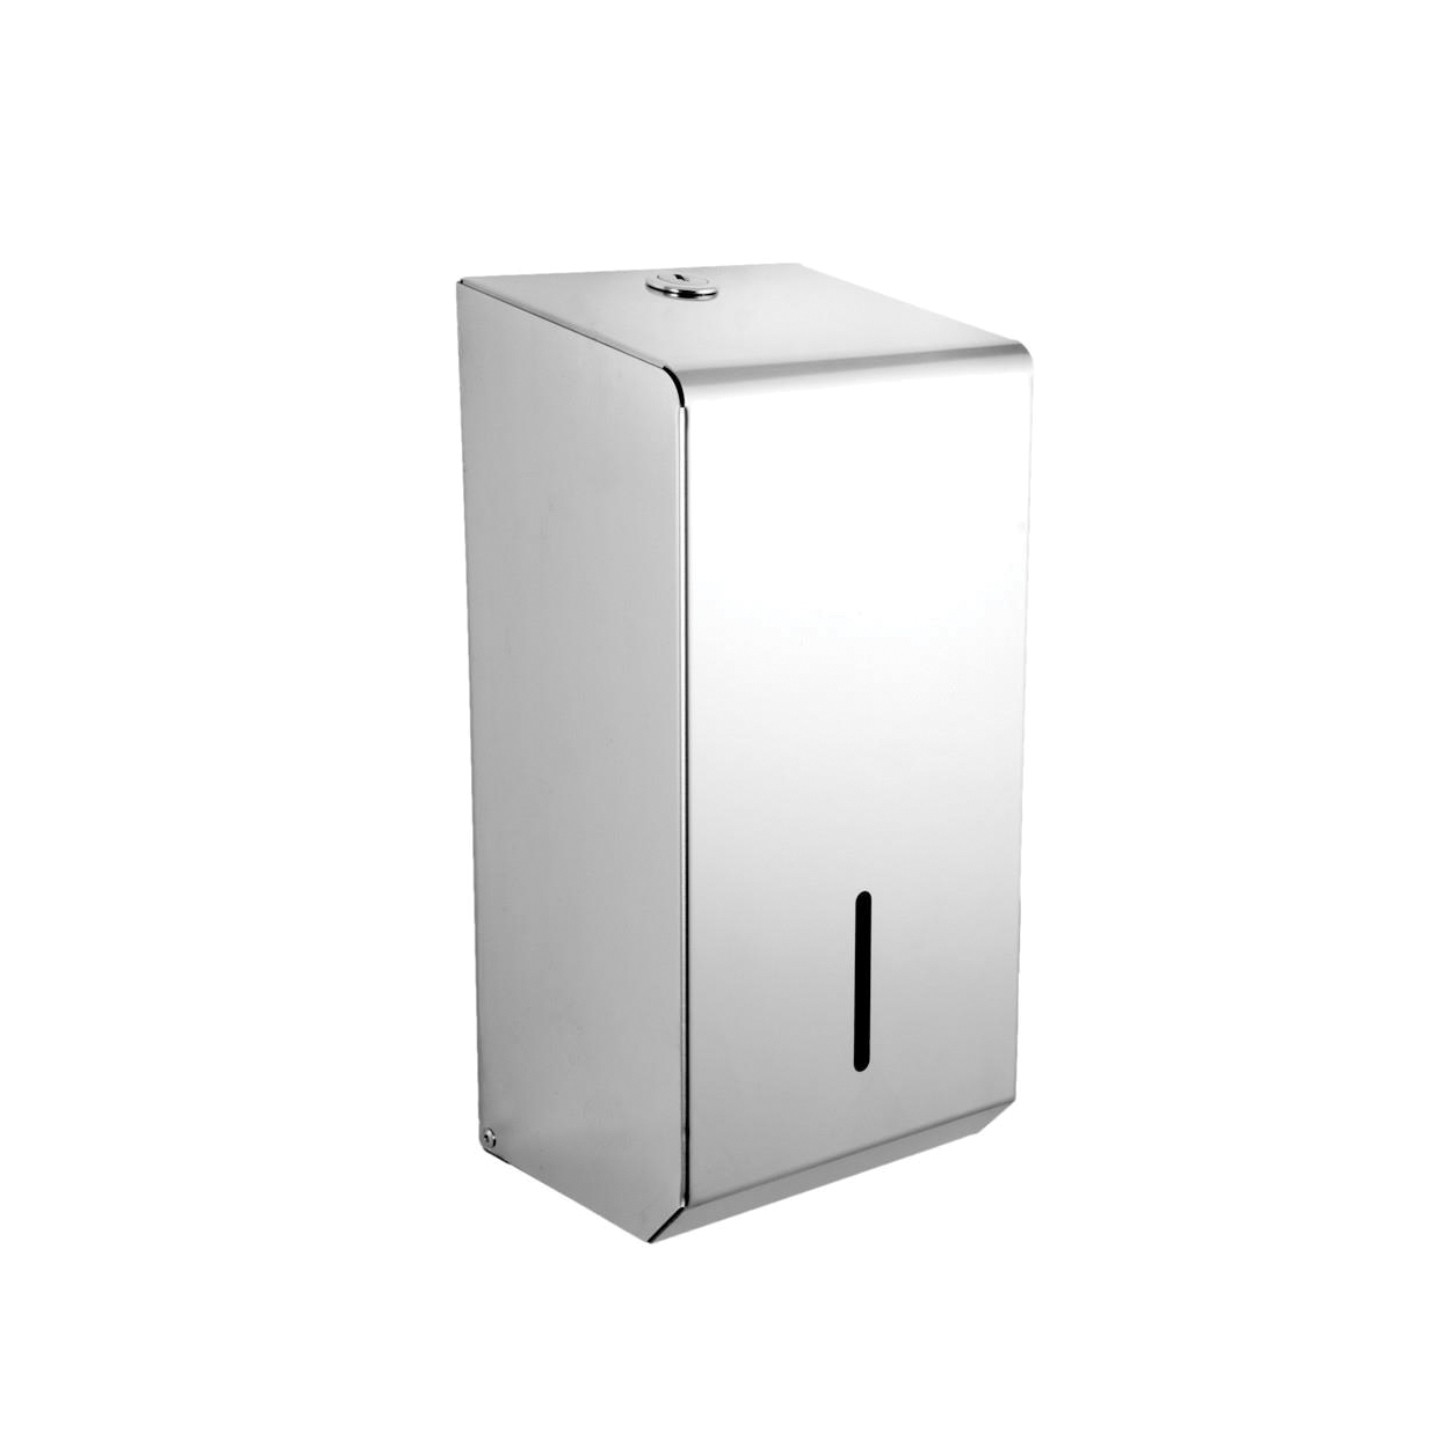 Polished Stainess Steel Superflat Pack Dispenser